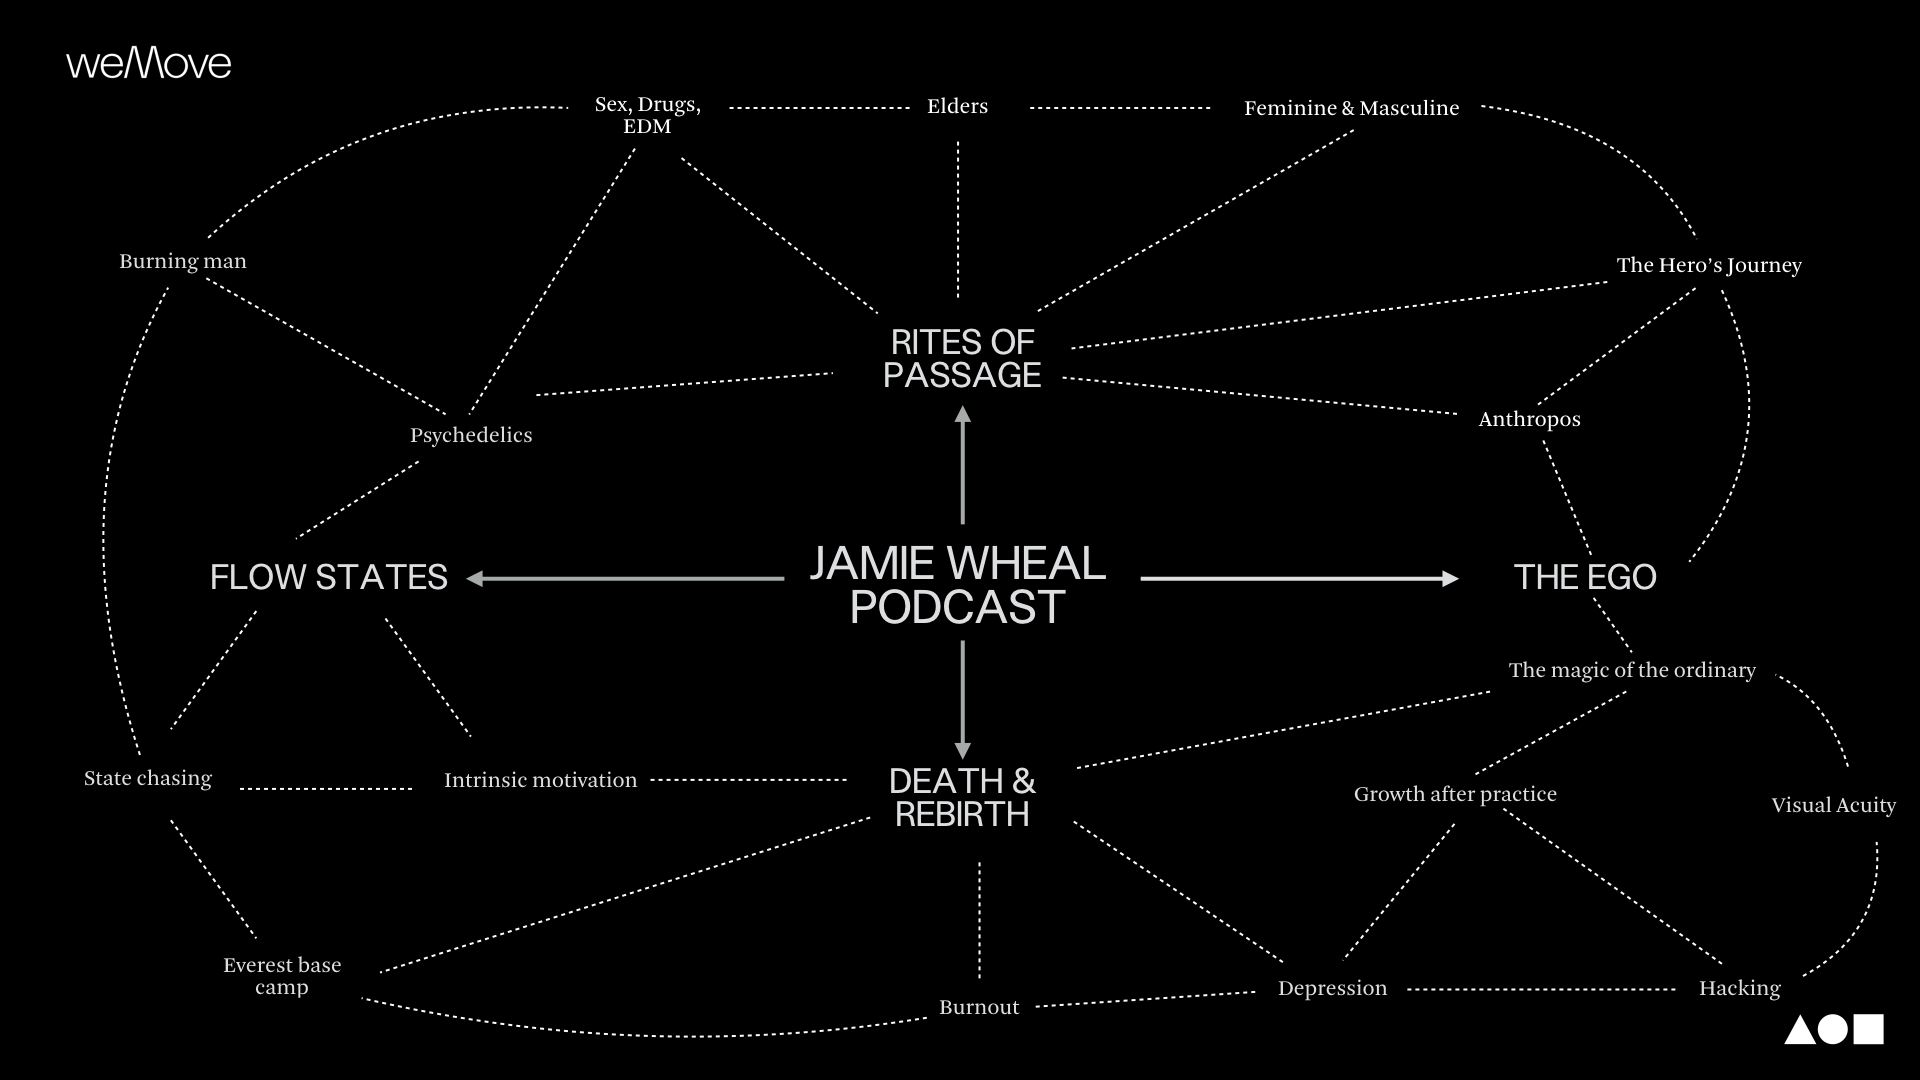 Themes from the Finding Flow podcast with Jamie Wheal